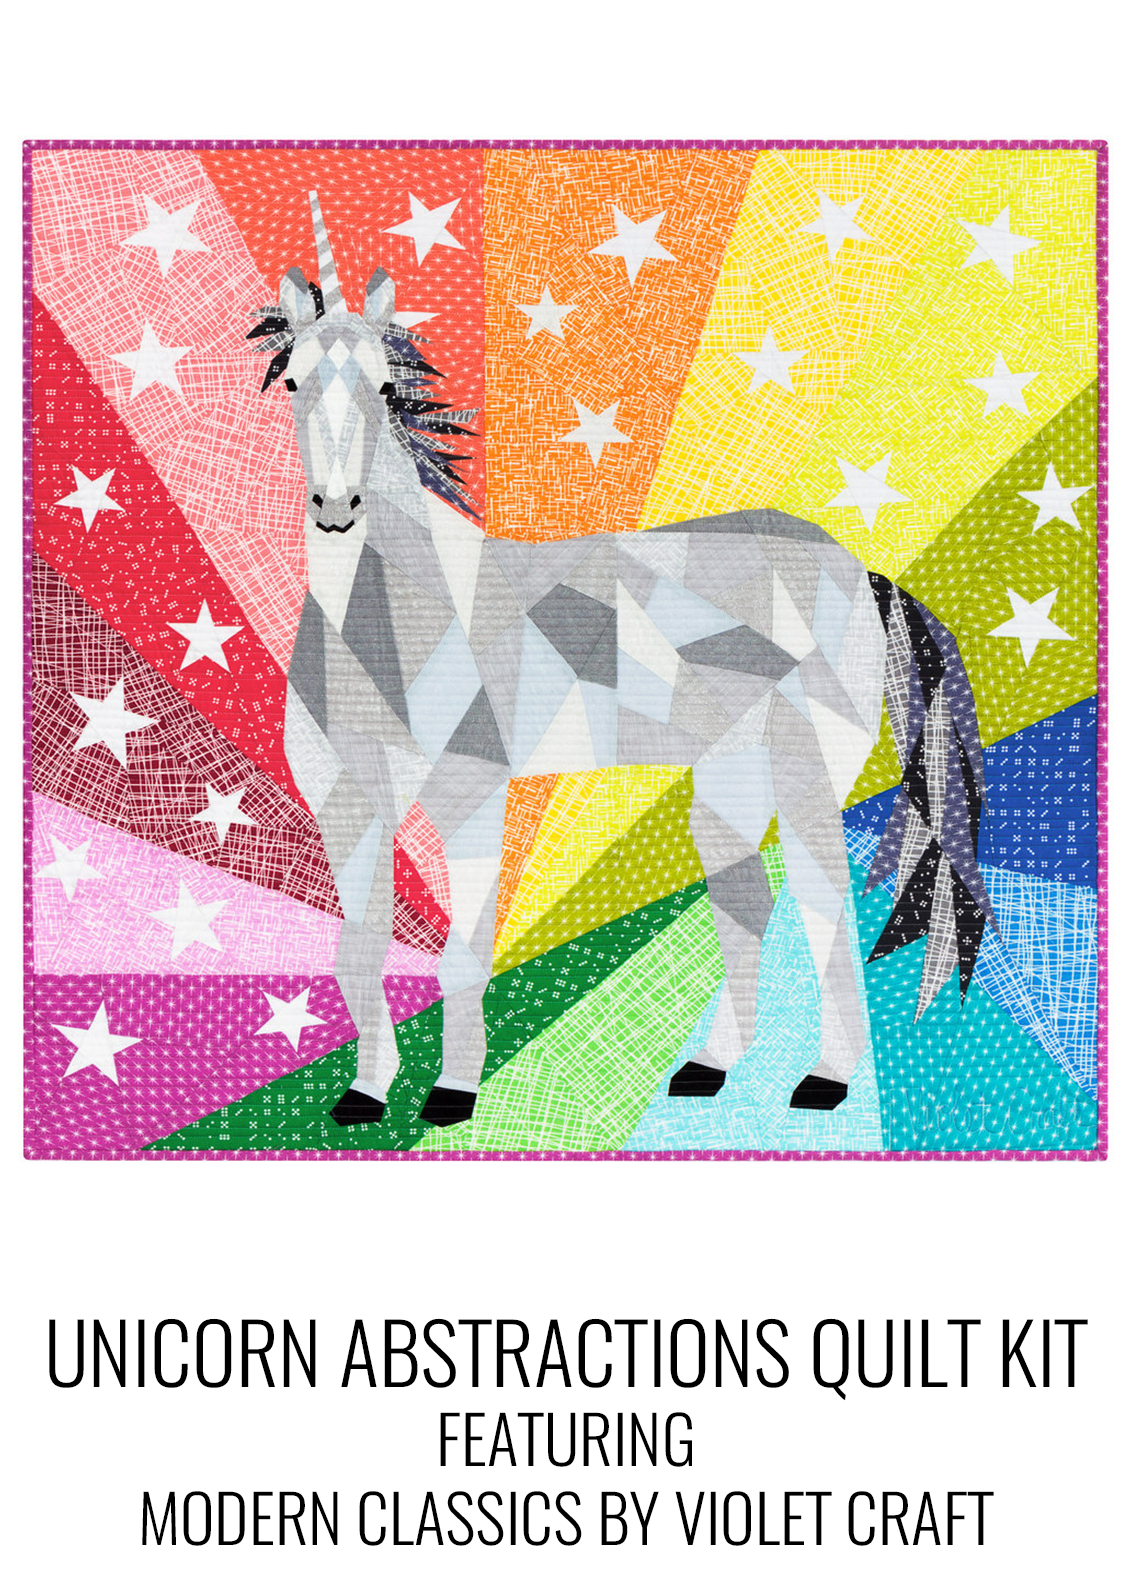 Unicorn abstrations